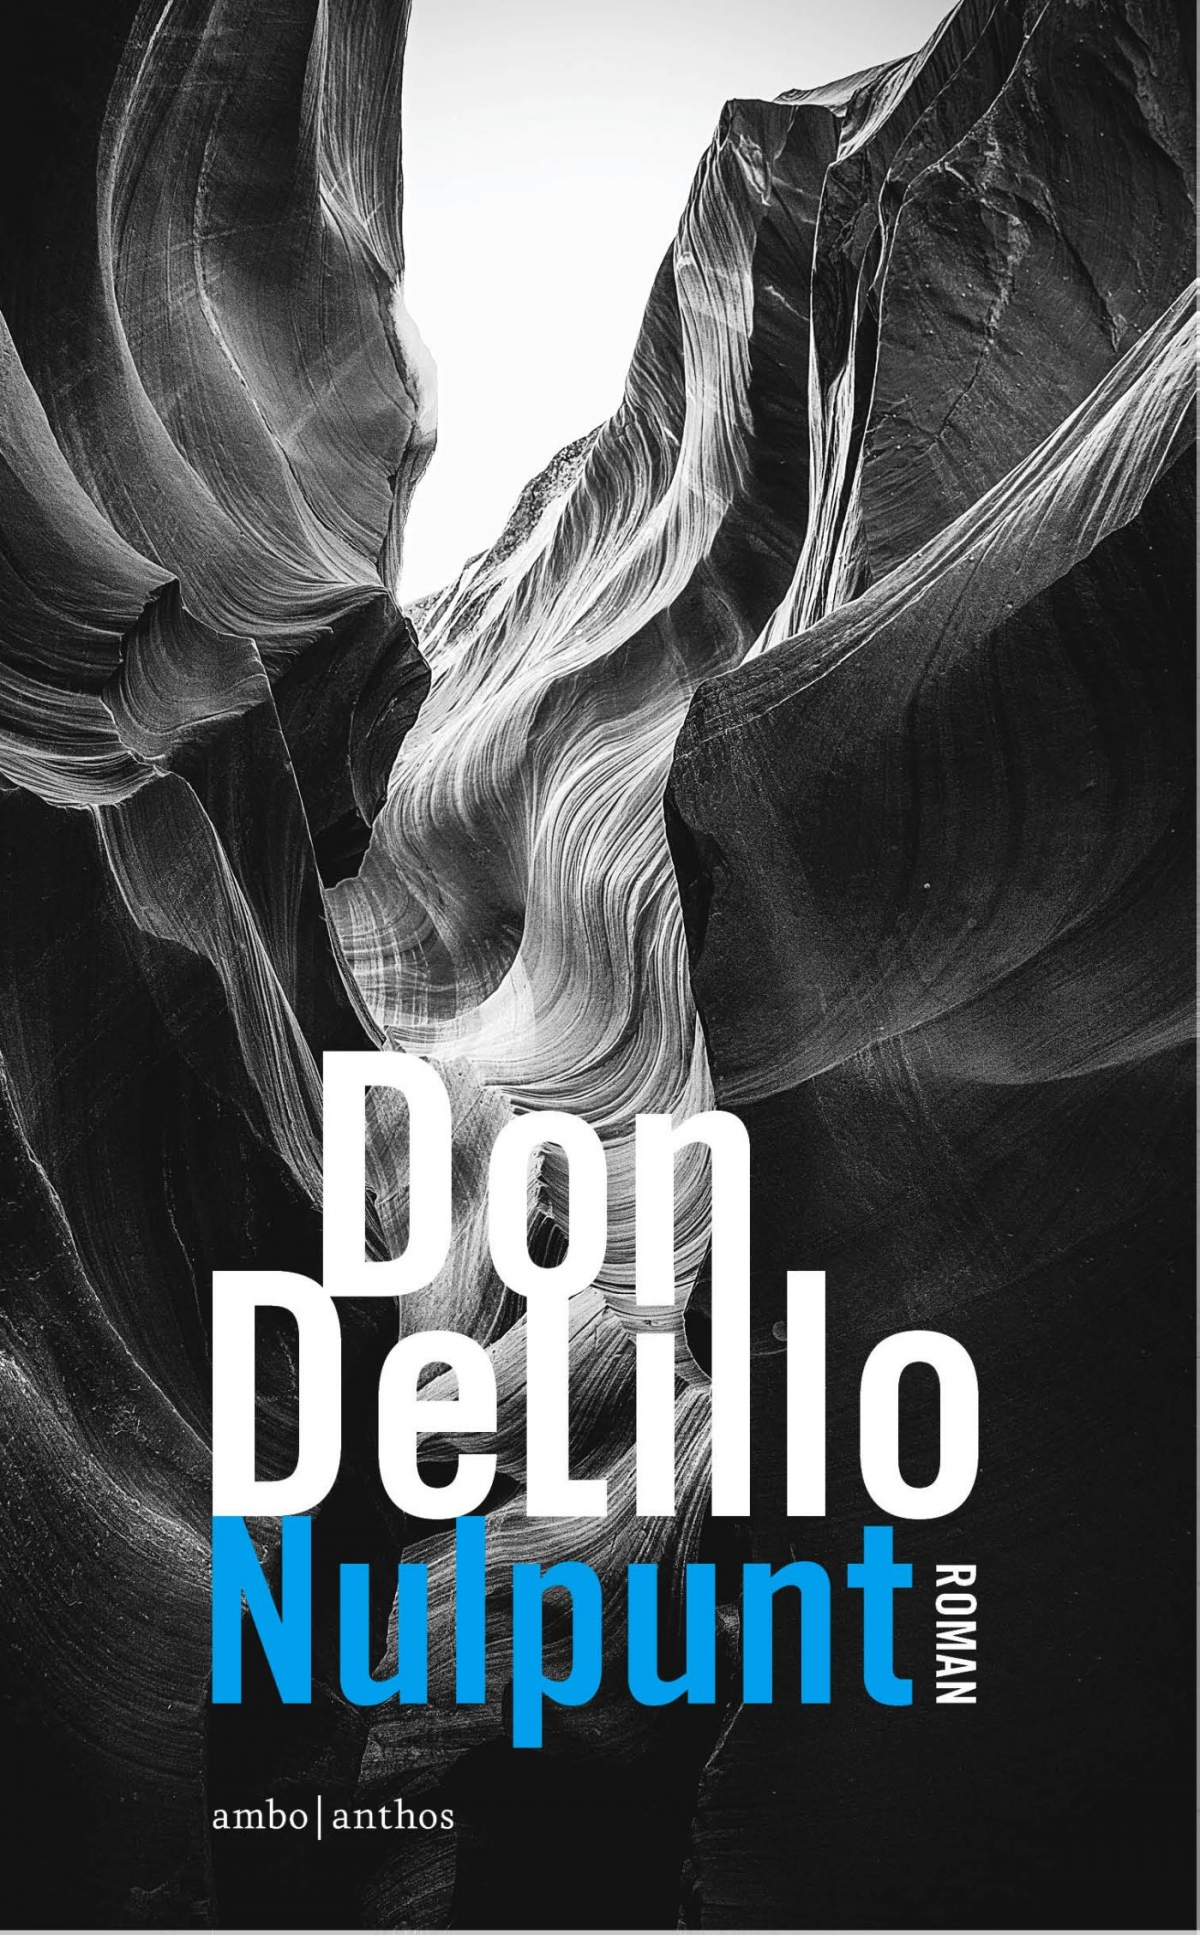 Nulpunt – Don Delillo